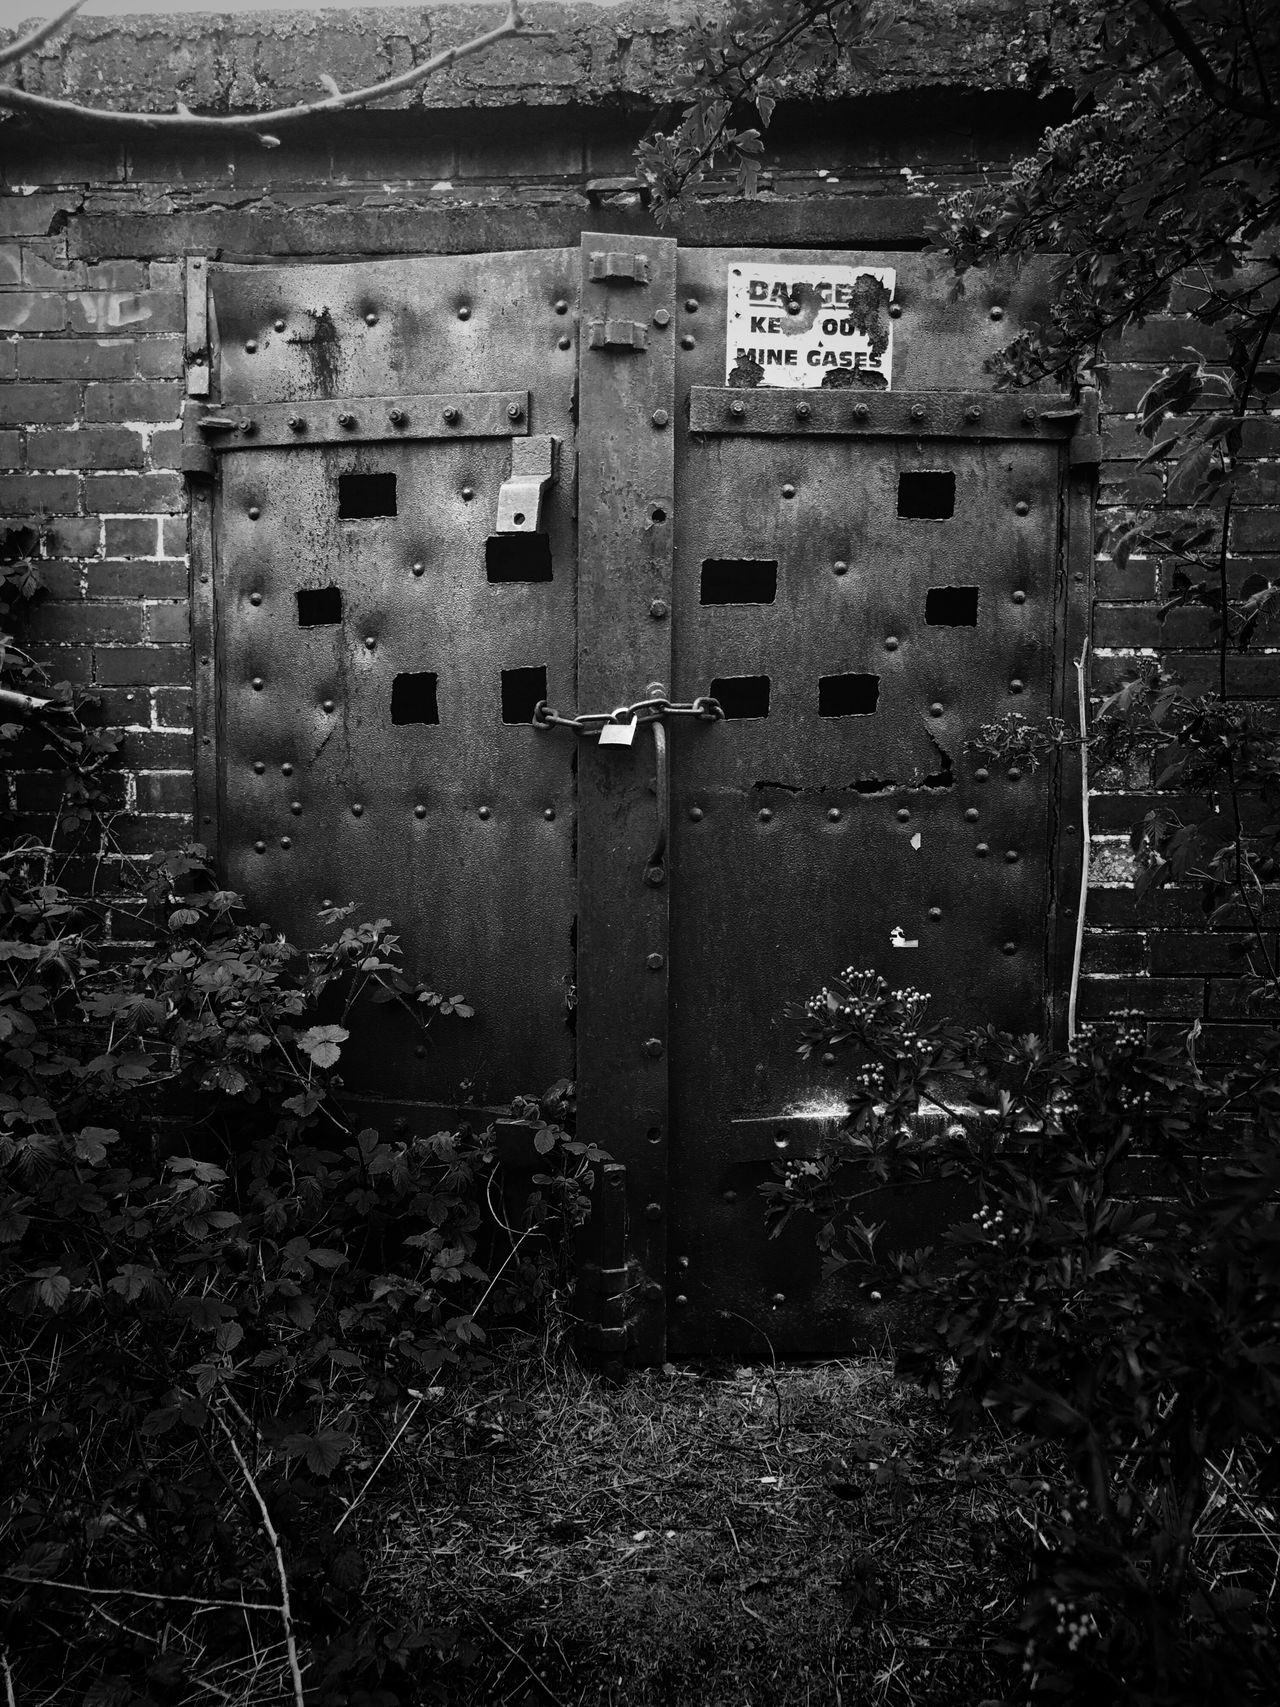 'DANGER. Keep Out. Mine Gases.' Door No People Day Abandoned Outdoors Mine Close-up Architecture Mining Heritage Mining Industry History Black & White Blackandwhite Black And White Brick Building Brick Overgrown The Architect - 2017 EyeEm Awards